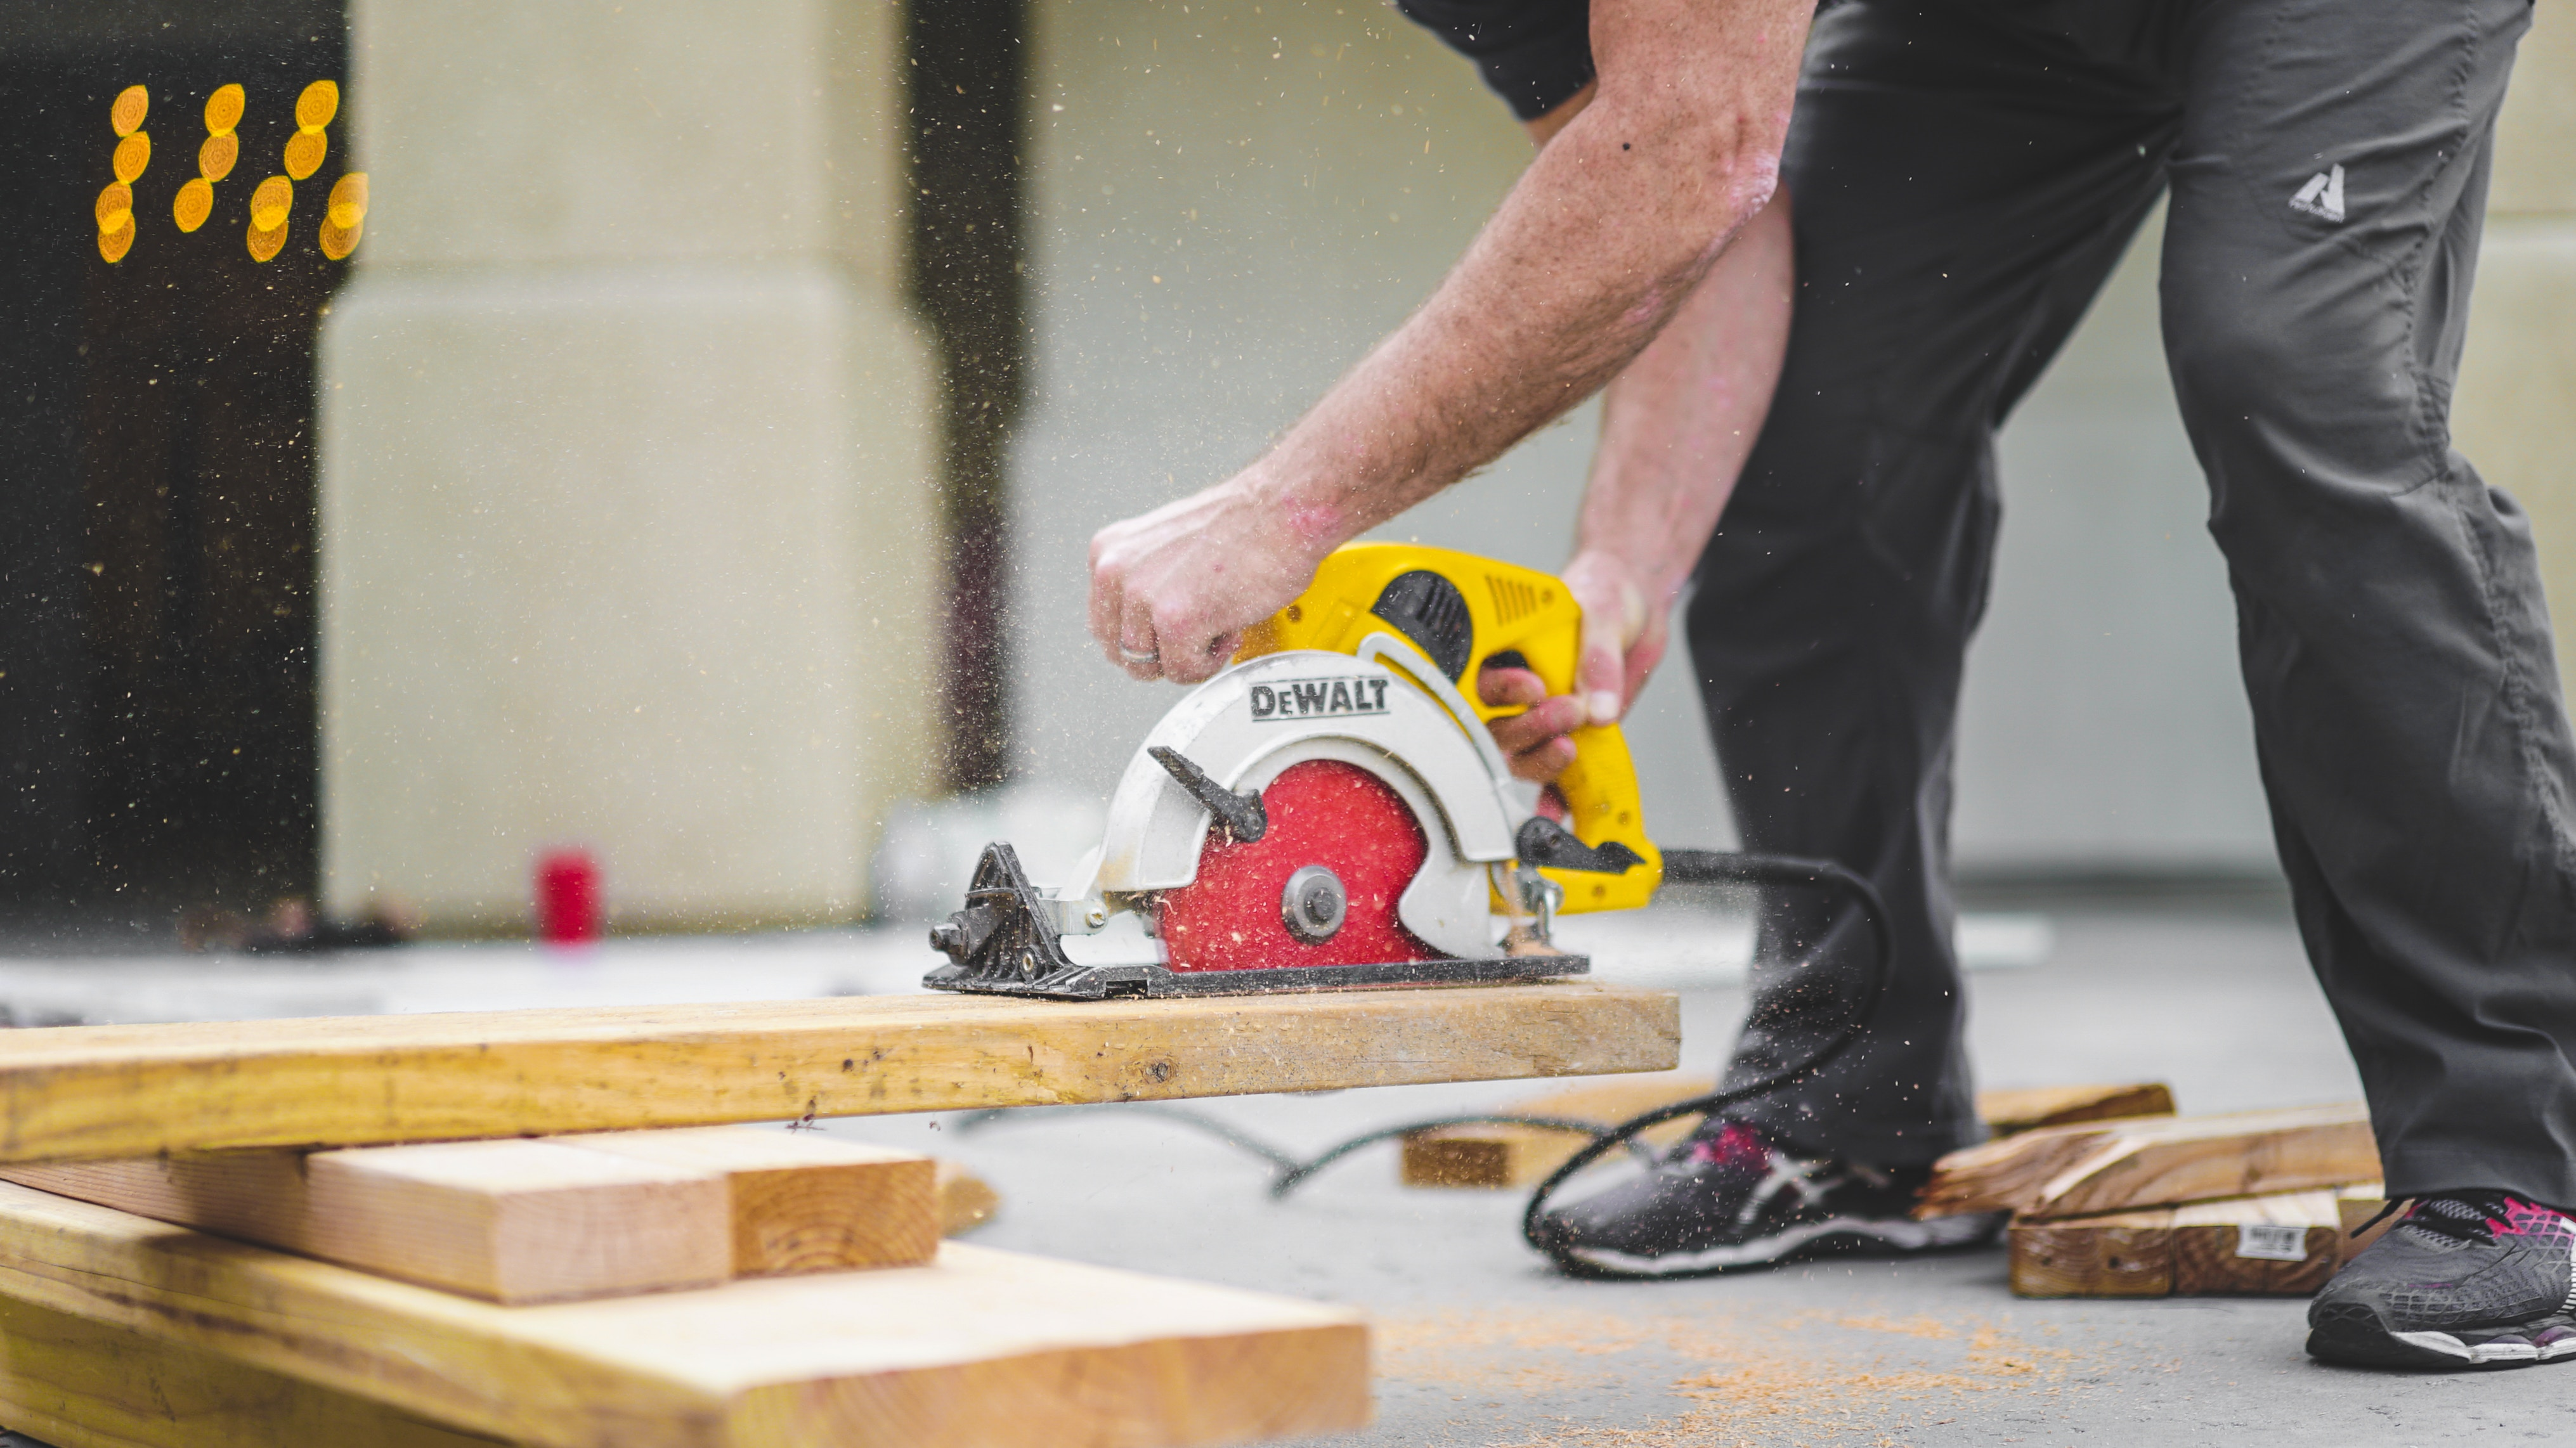 Do you have access to the tools necessary for a home renovation?